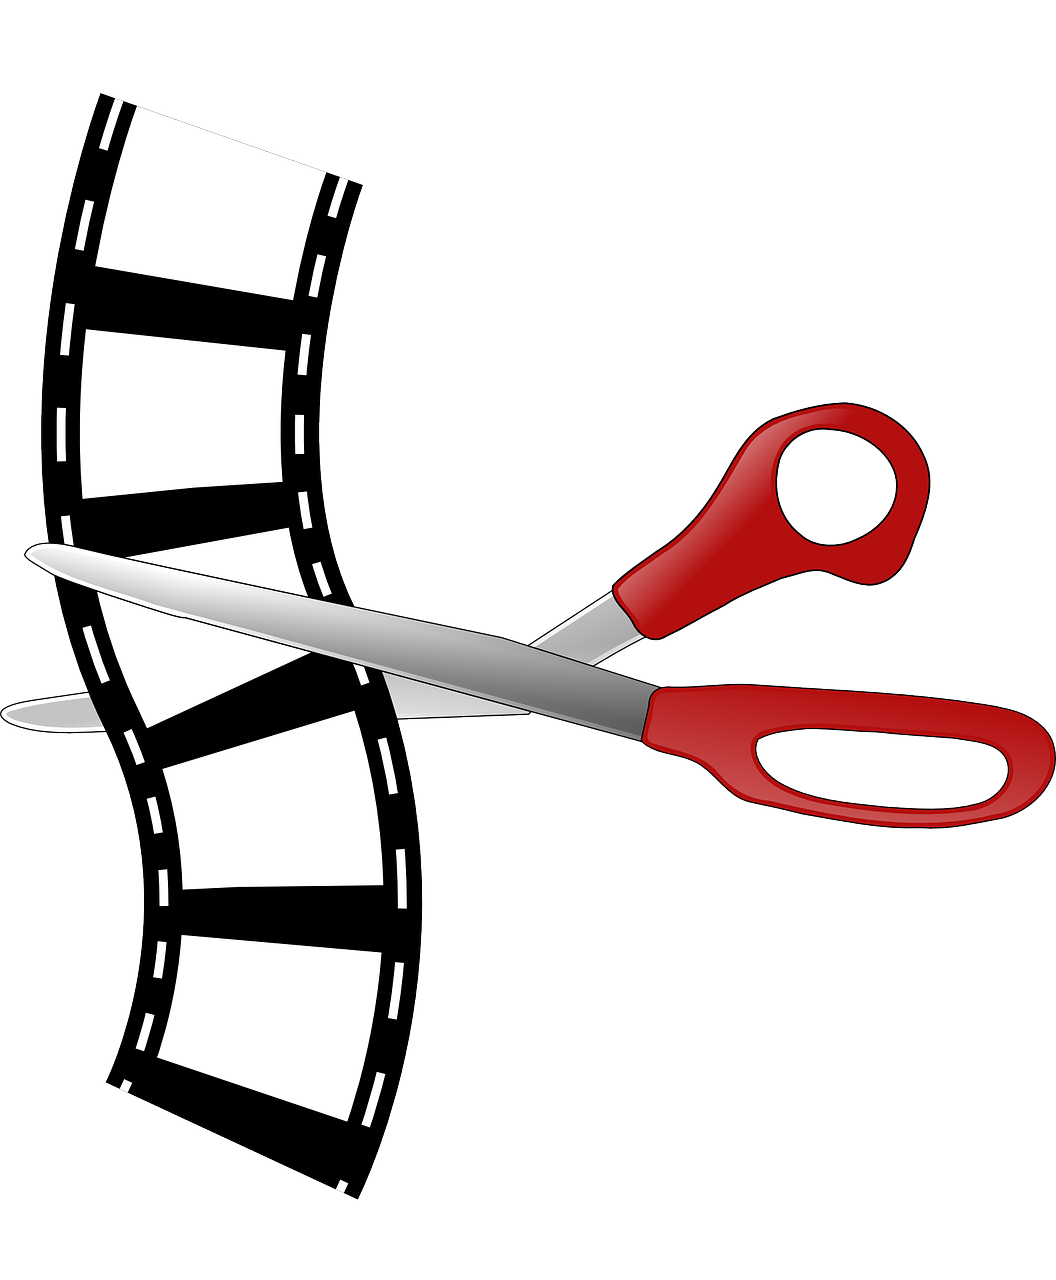 Editingsoftware clipart video production Your tips Approaches To Improve